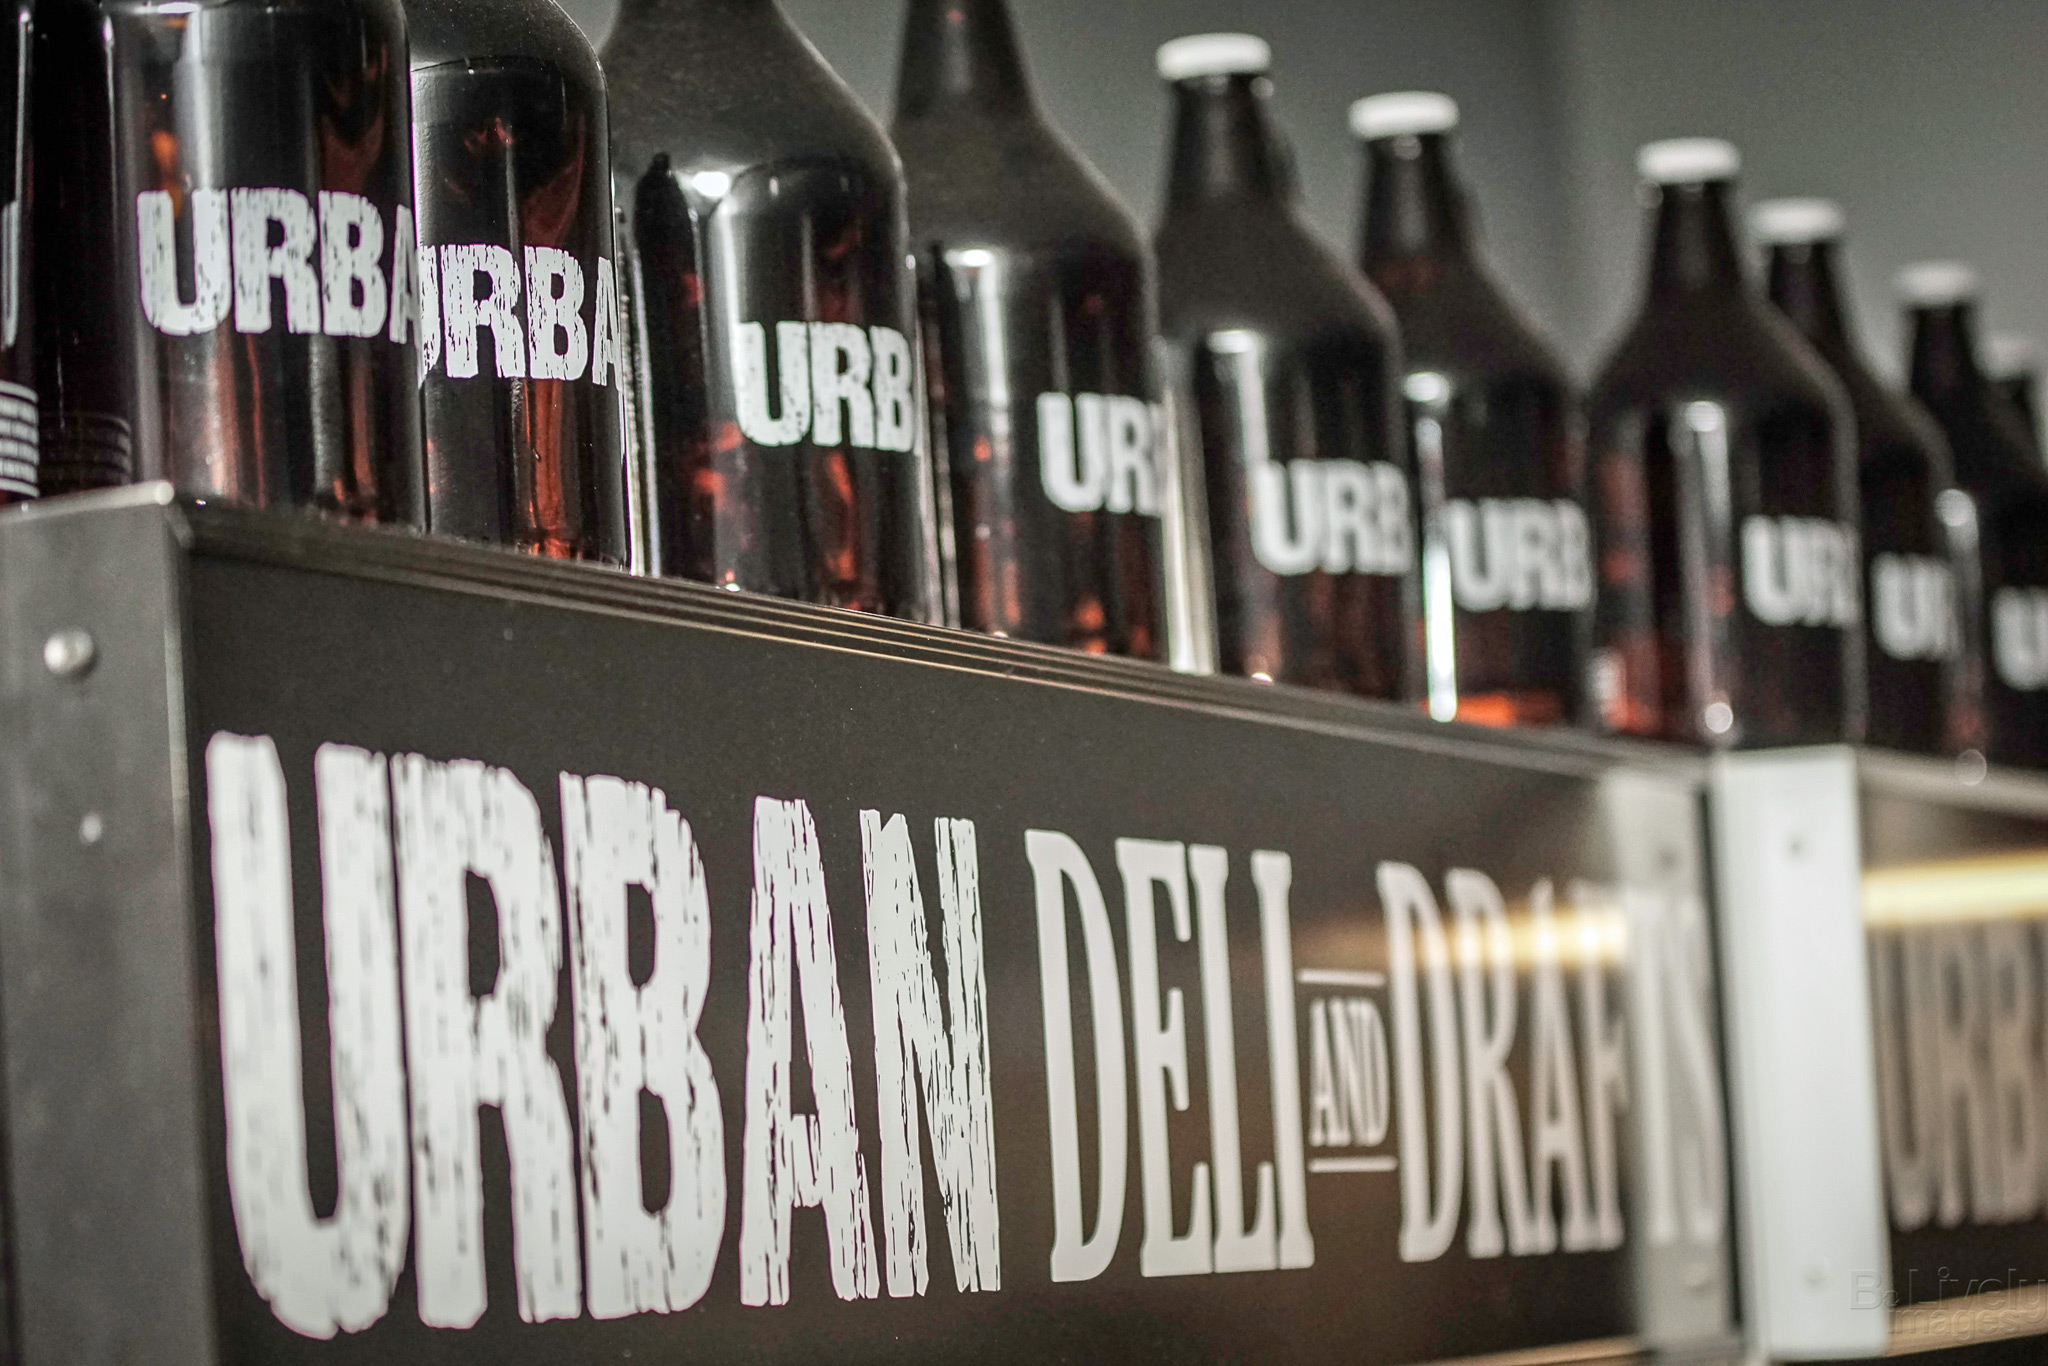 Urban Deli and Drafts